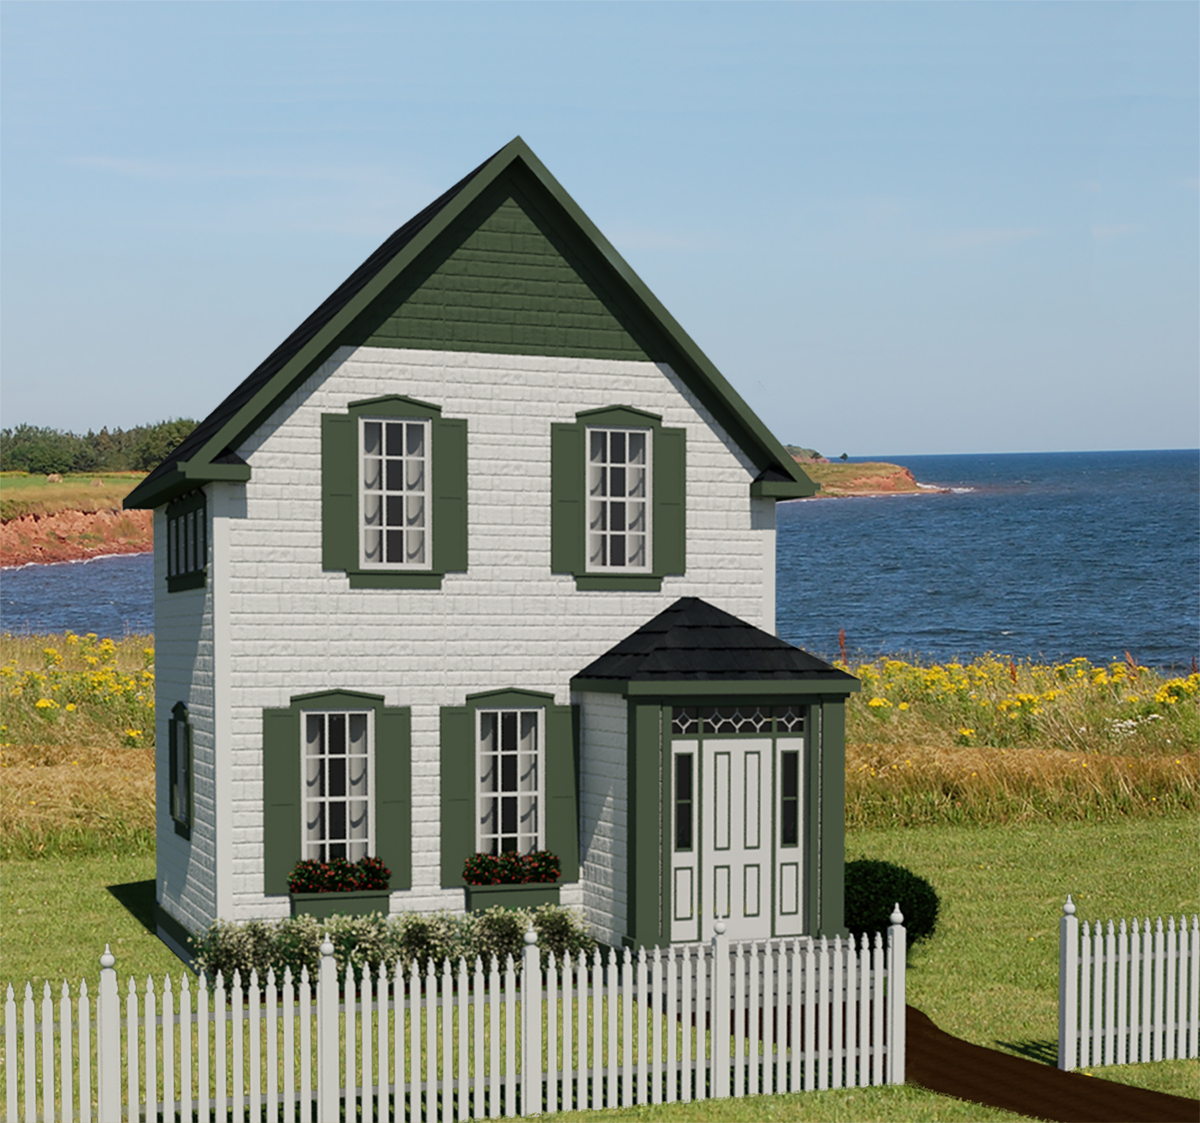 Prince edward island 597 robinson plans for Small home design plans